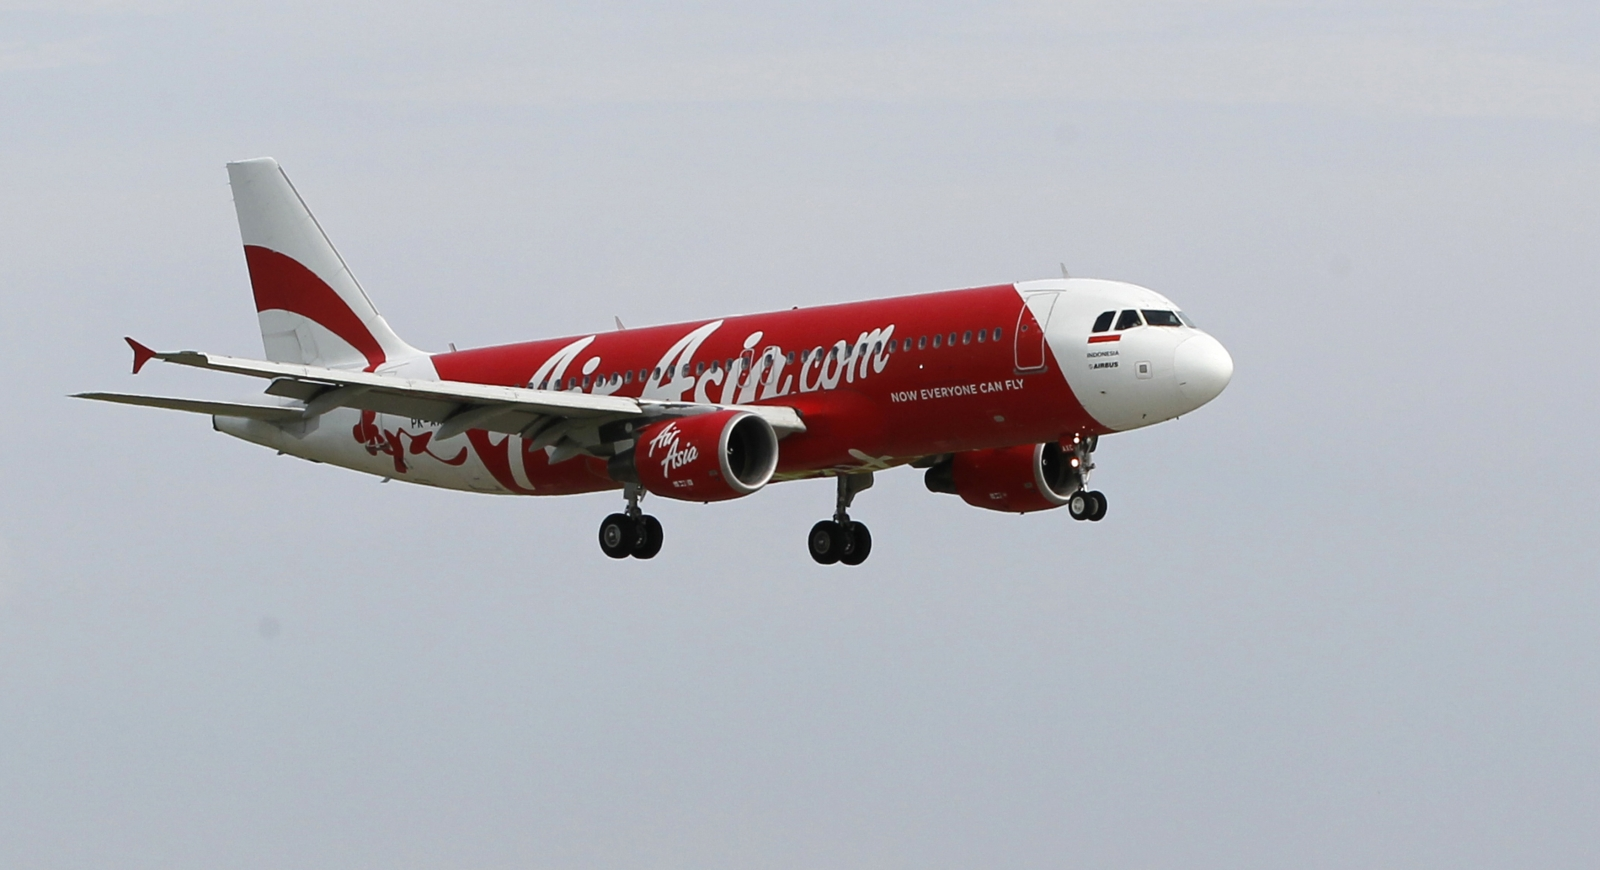 An Indonesia AirAsia Airbus A320-200 similar to missing flight QZ8501